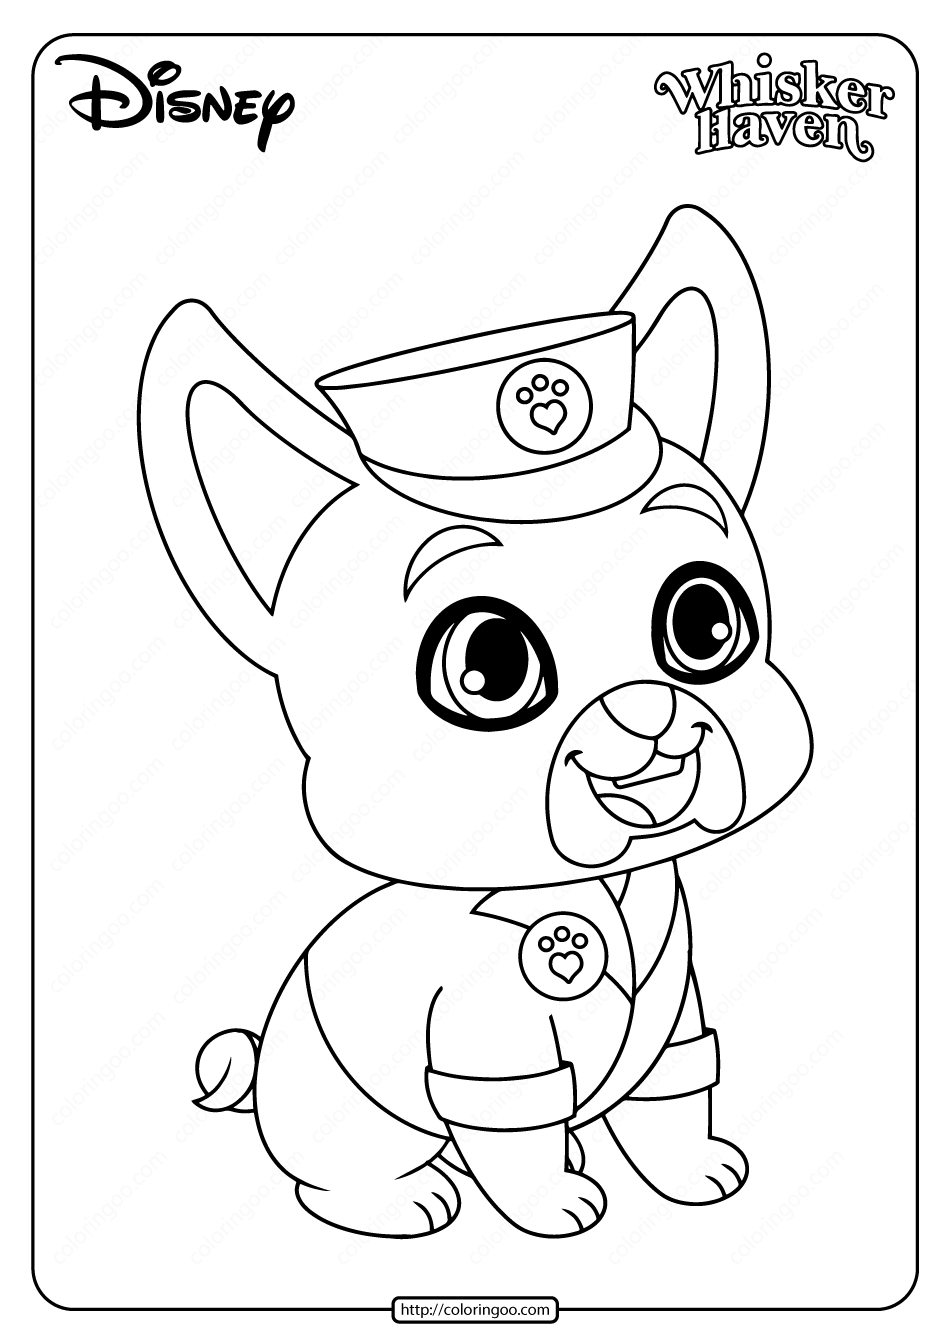 Printable Palace Pets Critterzen Coloring Book In 2020 Palace Pets Disney Princess Palace Pets Coloring Books